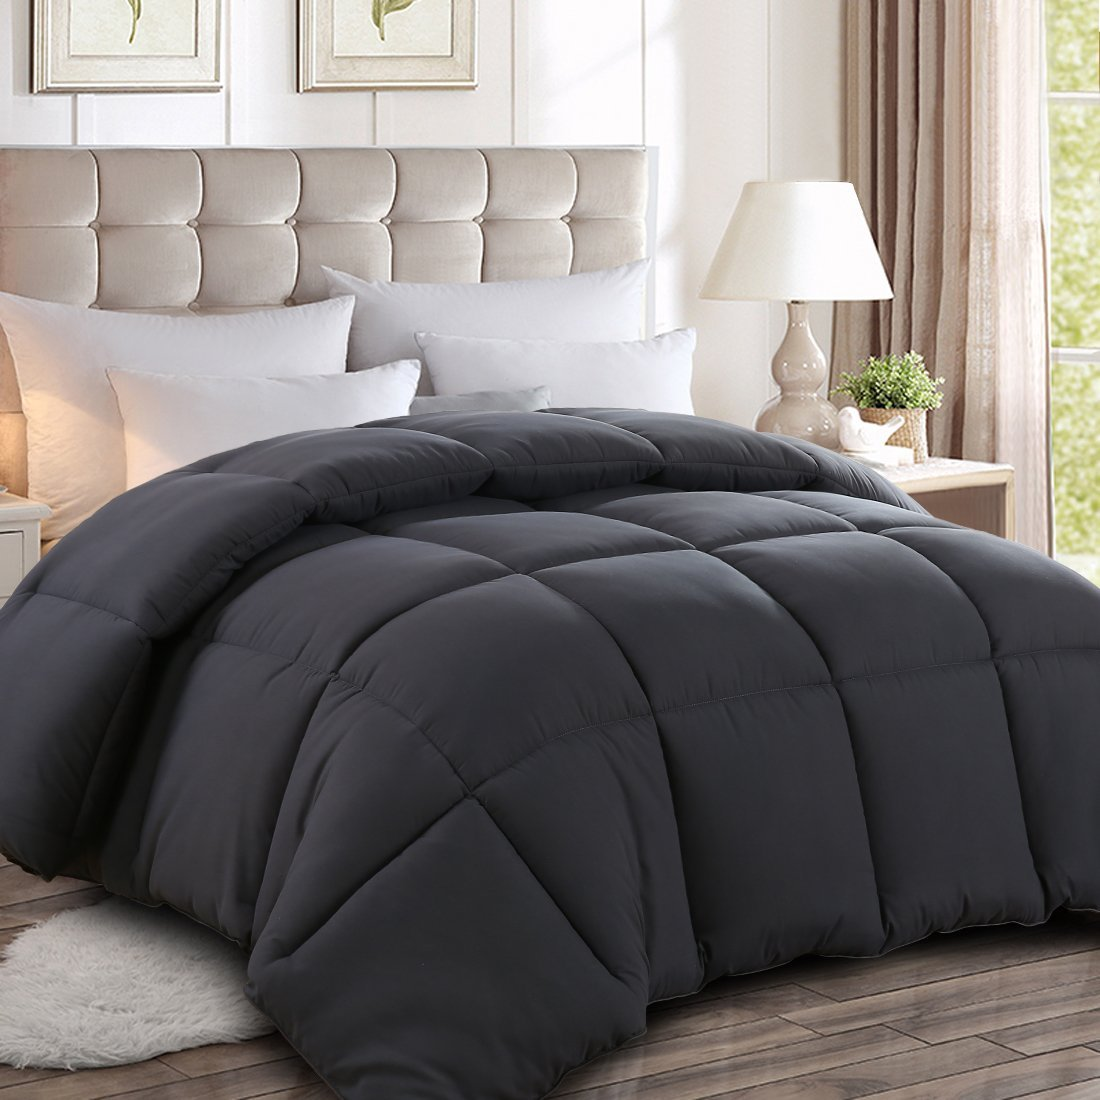 Maevis Twin Quilted Down Alternative Comforter All Season - Hotel Collection Luxury Soft Warm Fluffy Hypoallergenic Reversible Duvet Insert with Corner Tab White,64 by 88 Inches